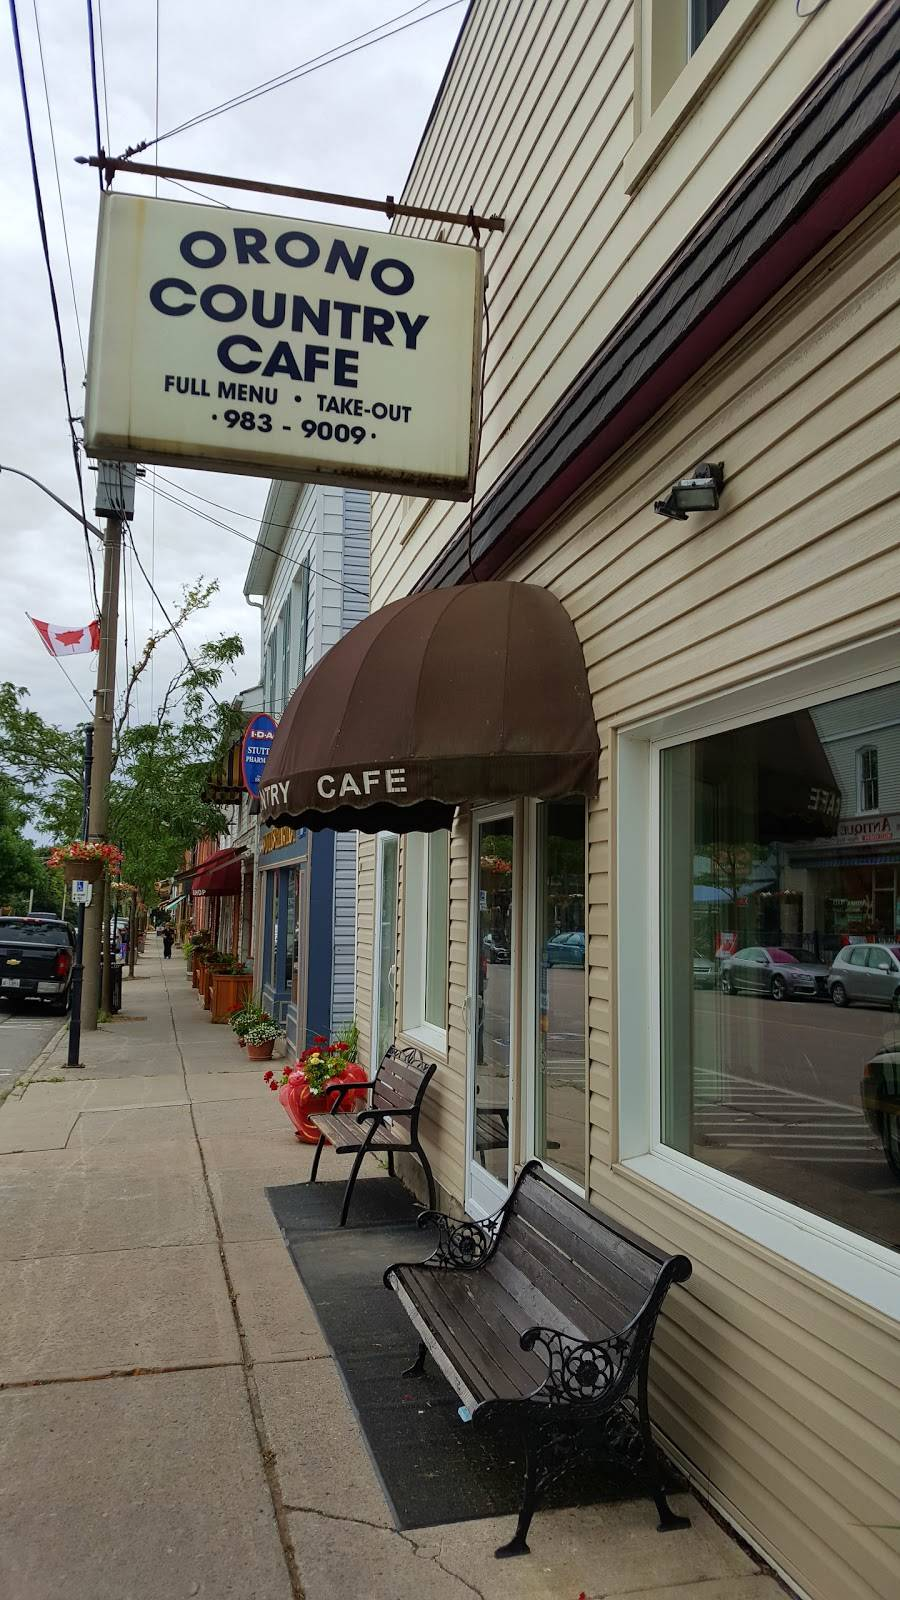 Orono Country Cafe | restaurant | 5348 Main St, Clarington, ON L0B, Canada | 9059839009 OR +1 905-983-9009